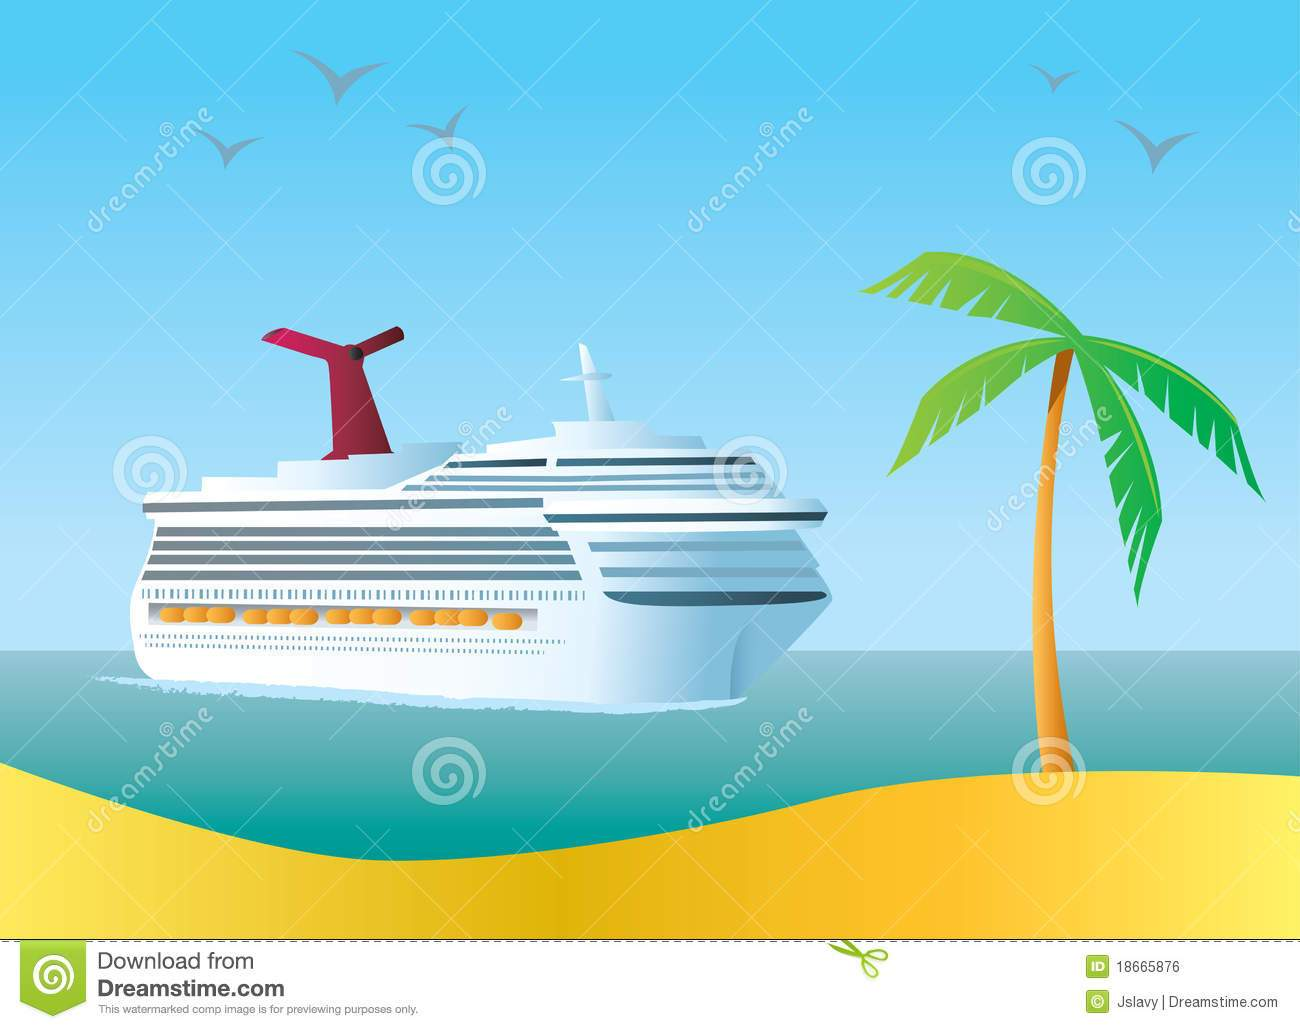 Carvinal cruise clipart banner library Carnival cruise ship clipart 2 » Clipart Portal banner library